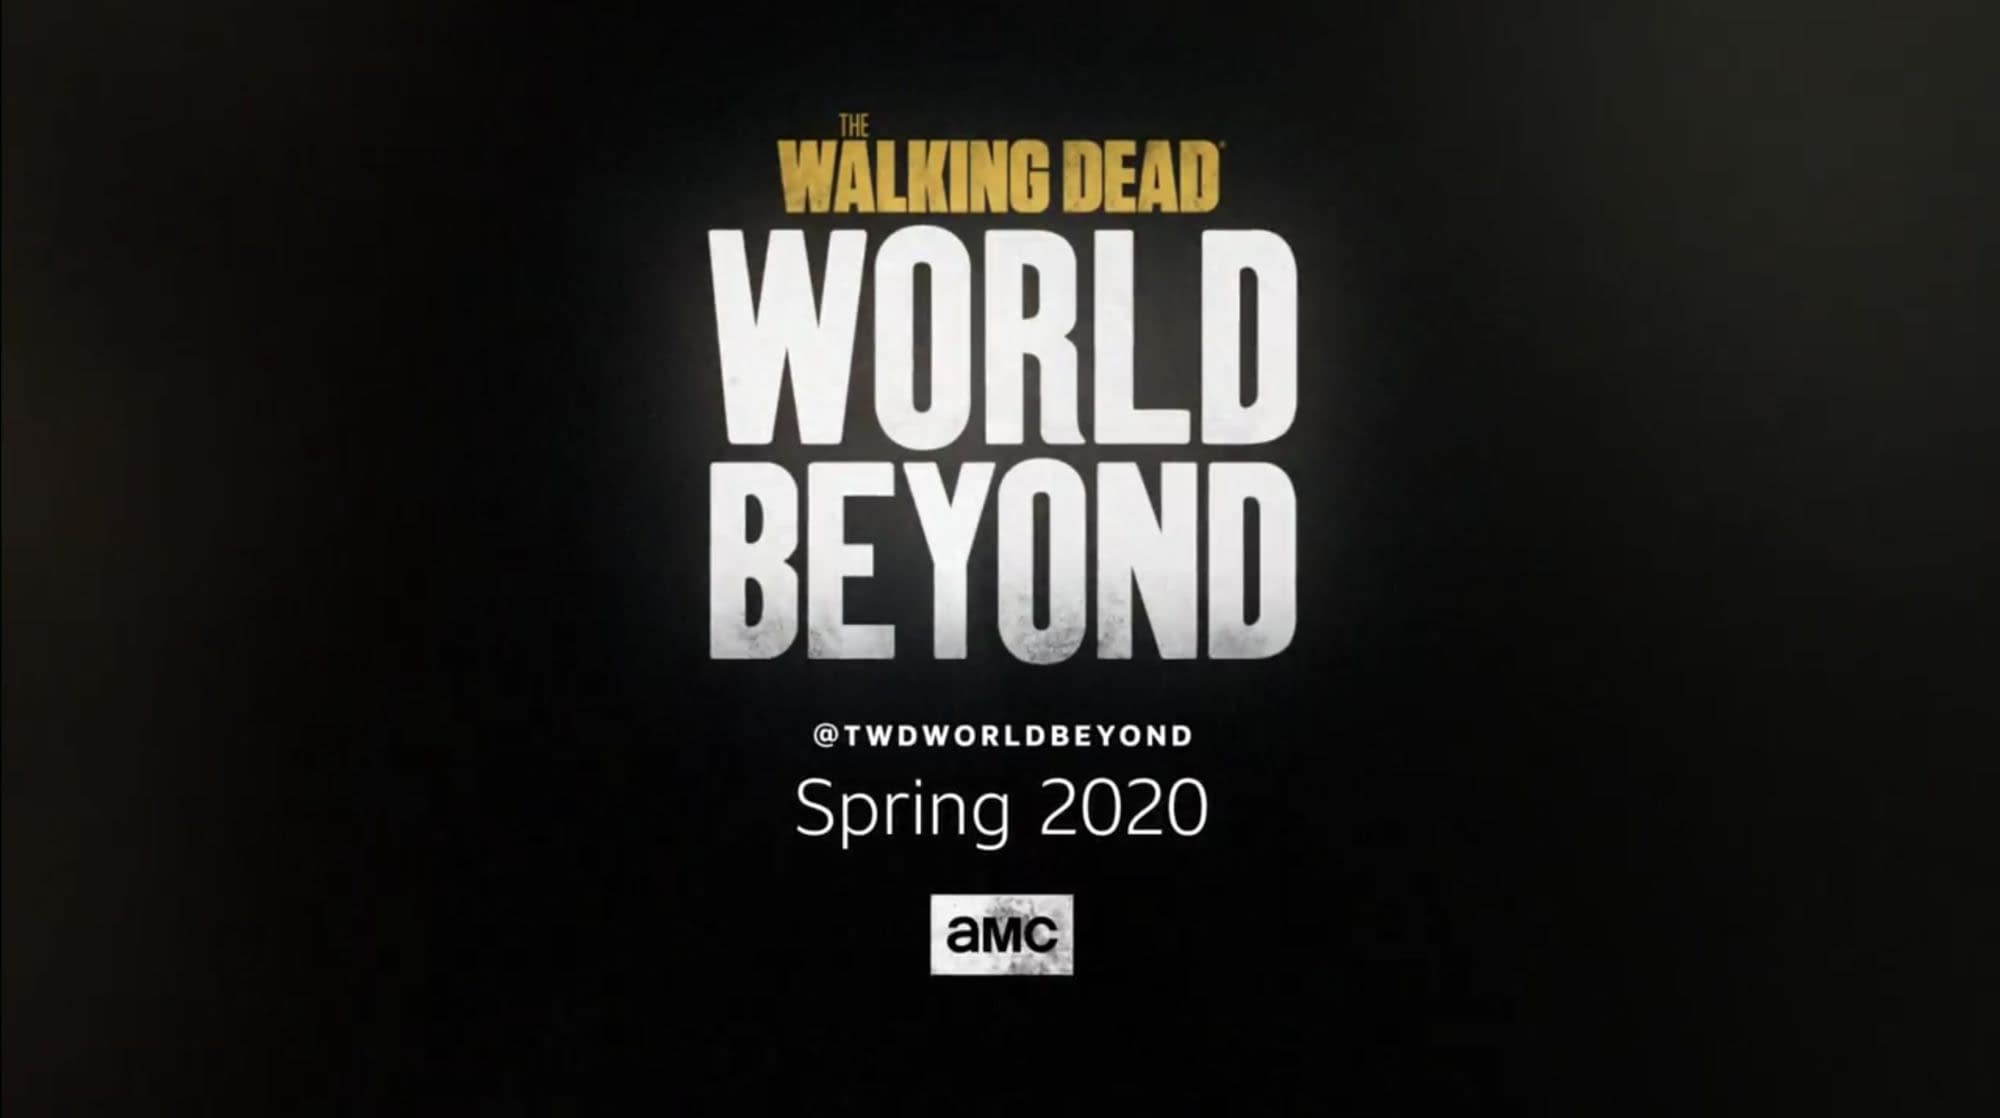 """The Walking Dead: World Beyond"": 2-Season Limited Series Releases New Images [PREVIEW]"